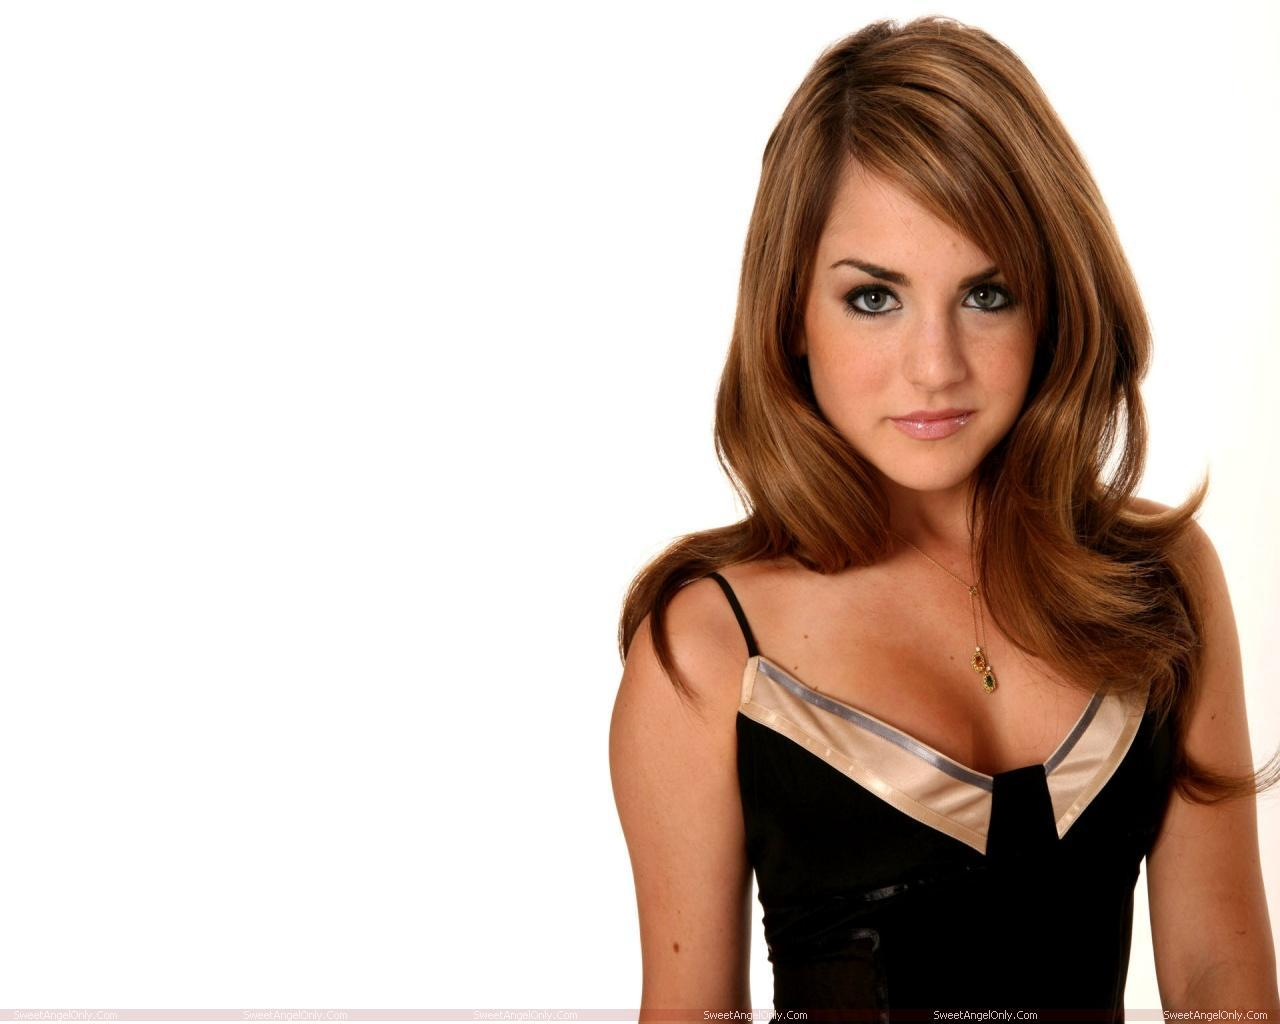 http://1.bp.blogspot.com/-sev1zkJ9zj8/TXDfsf5dL8I/AAAAAAAAE_I/01zV61aAoF8/s1600/celebrity_joanna_levesque_hot_wallpapers_sweetangelonly_10.jpg